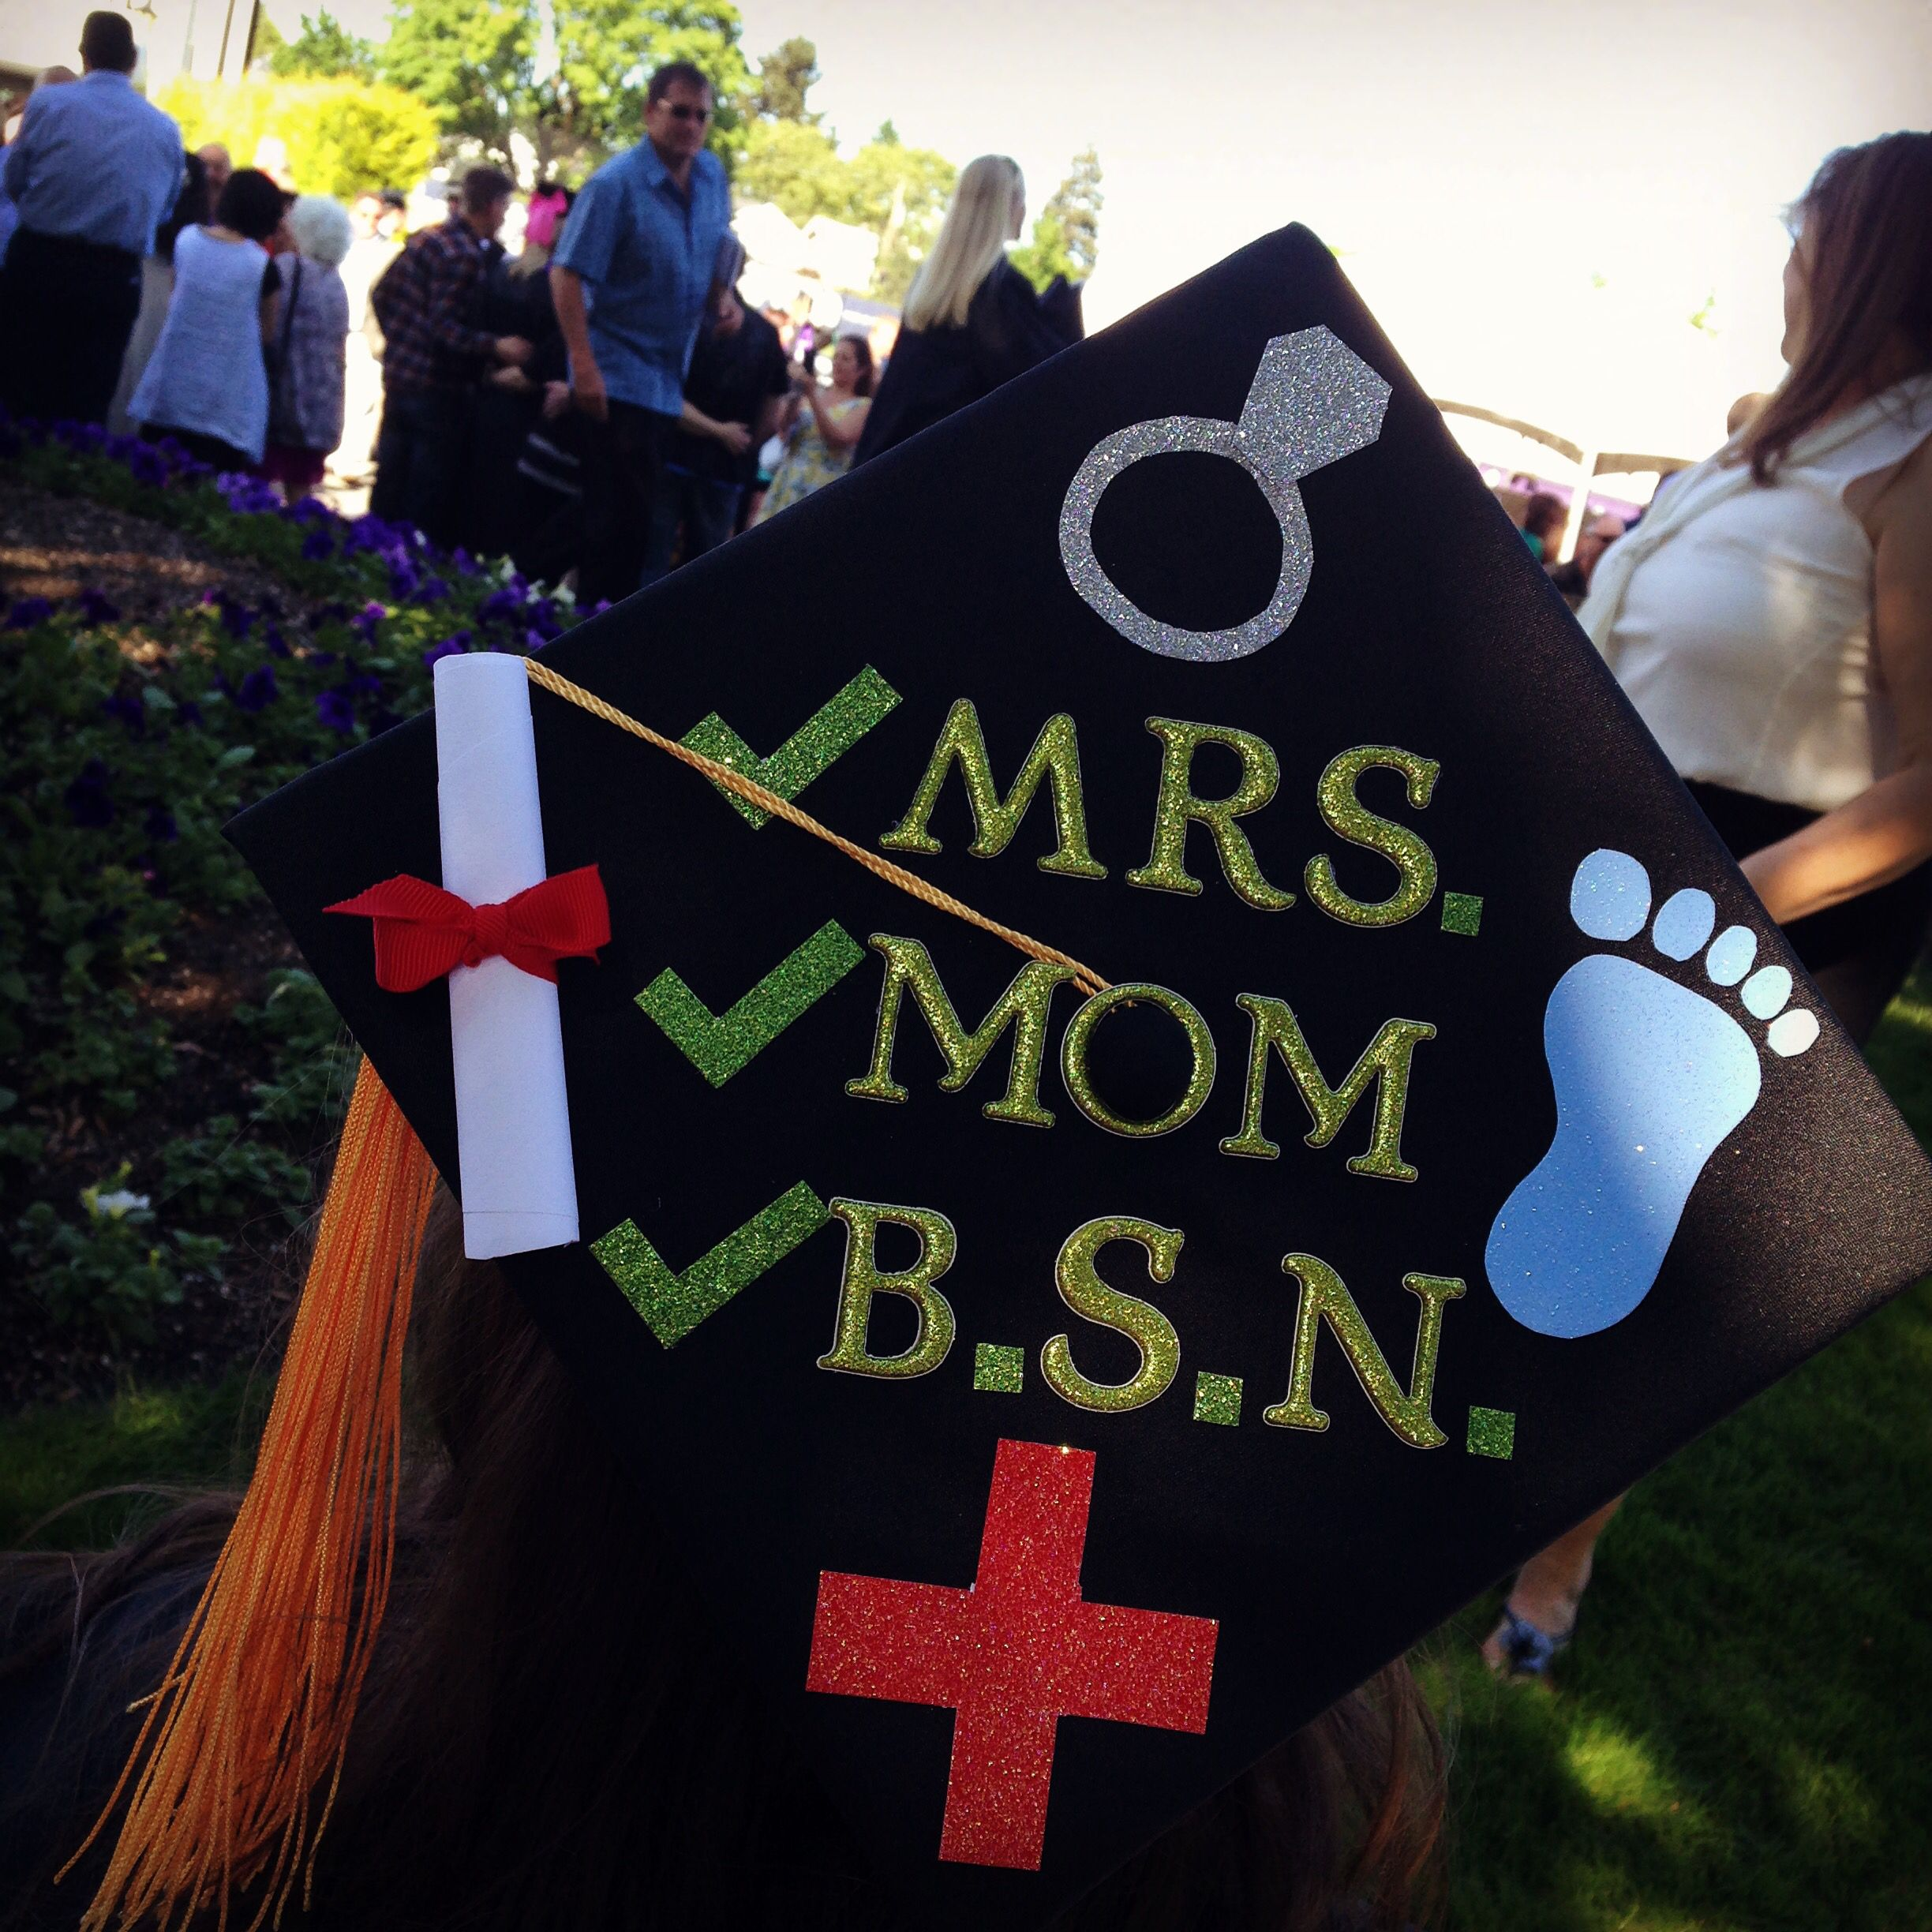 bsn rn graduation cap grad cap decoration mrs mom - Graduation Caps Decorated